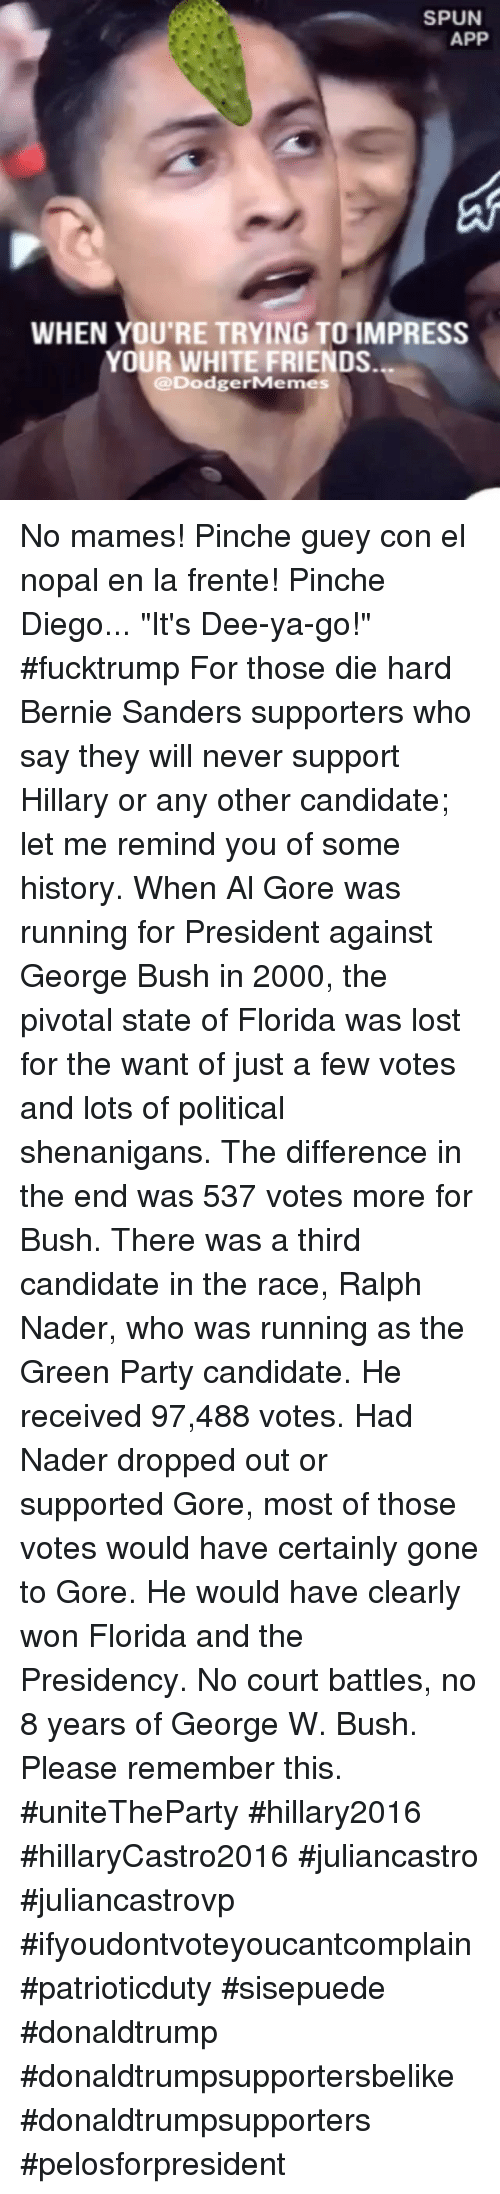 an analysis of bush and gore make me wanna ralph Ralph nader helped al gore win  of democrat al gore, an honest analysis  shows that nader's campaign was in  for bush, not for nader, whom one could  fault for making the state so close  the power they now enjoy, and they do not  want the democratic party to  thanks very much for contacting me.